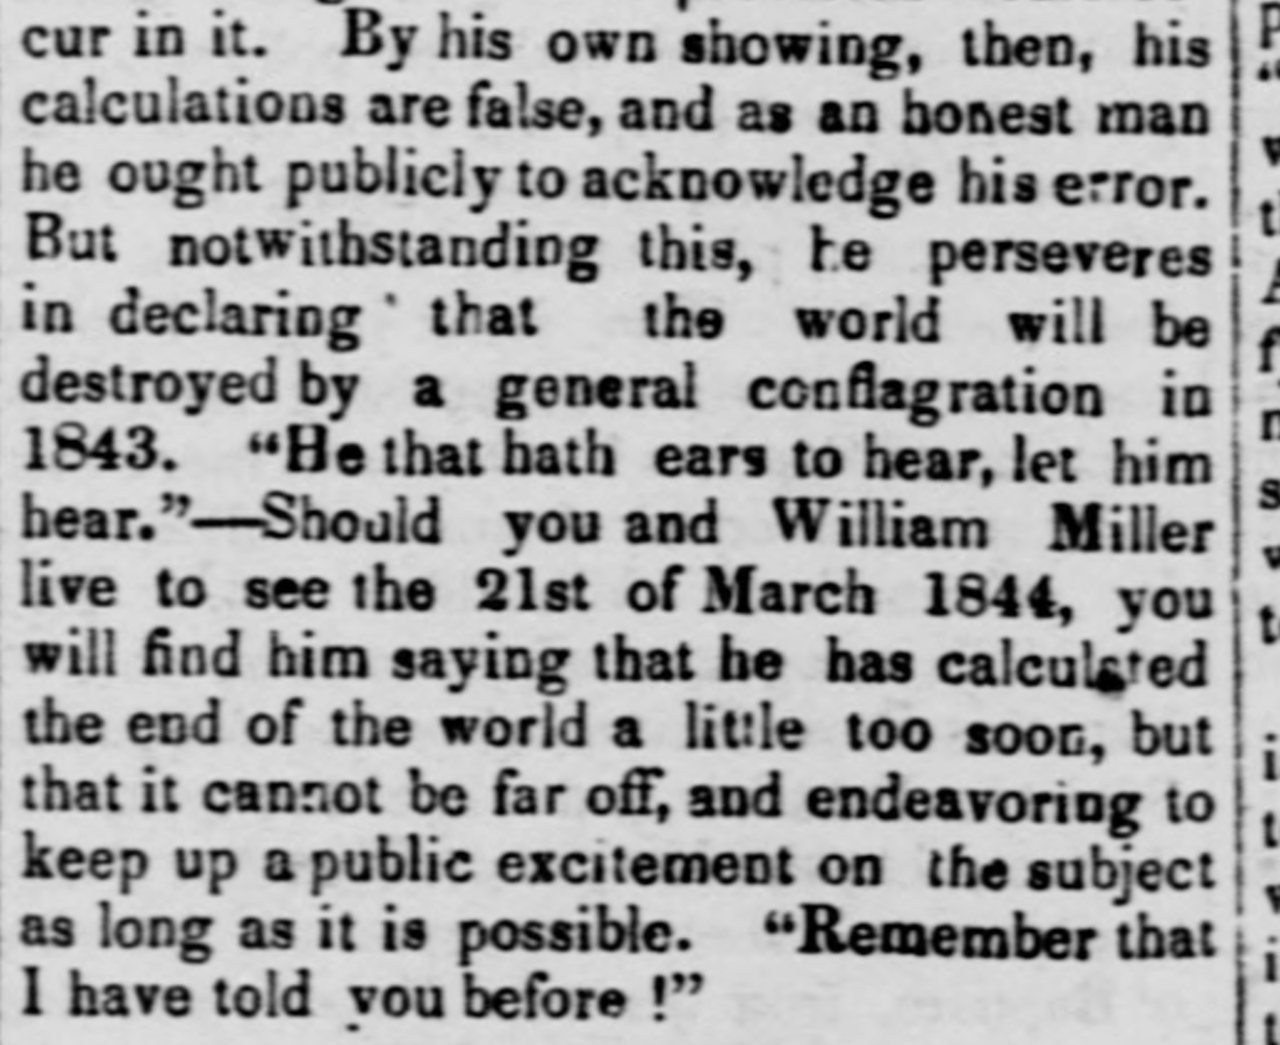 A sicko lib being Very Unfair to the Millerites in Middlebury, Vermont's premier lamestream Fake News outlet, 1843.